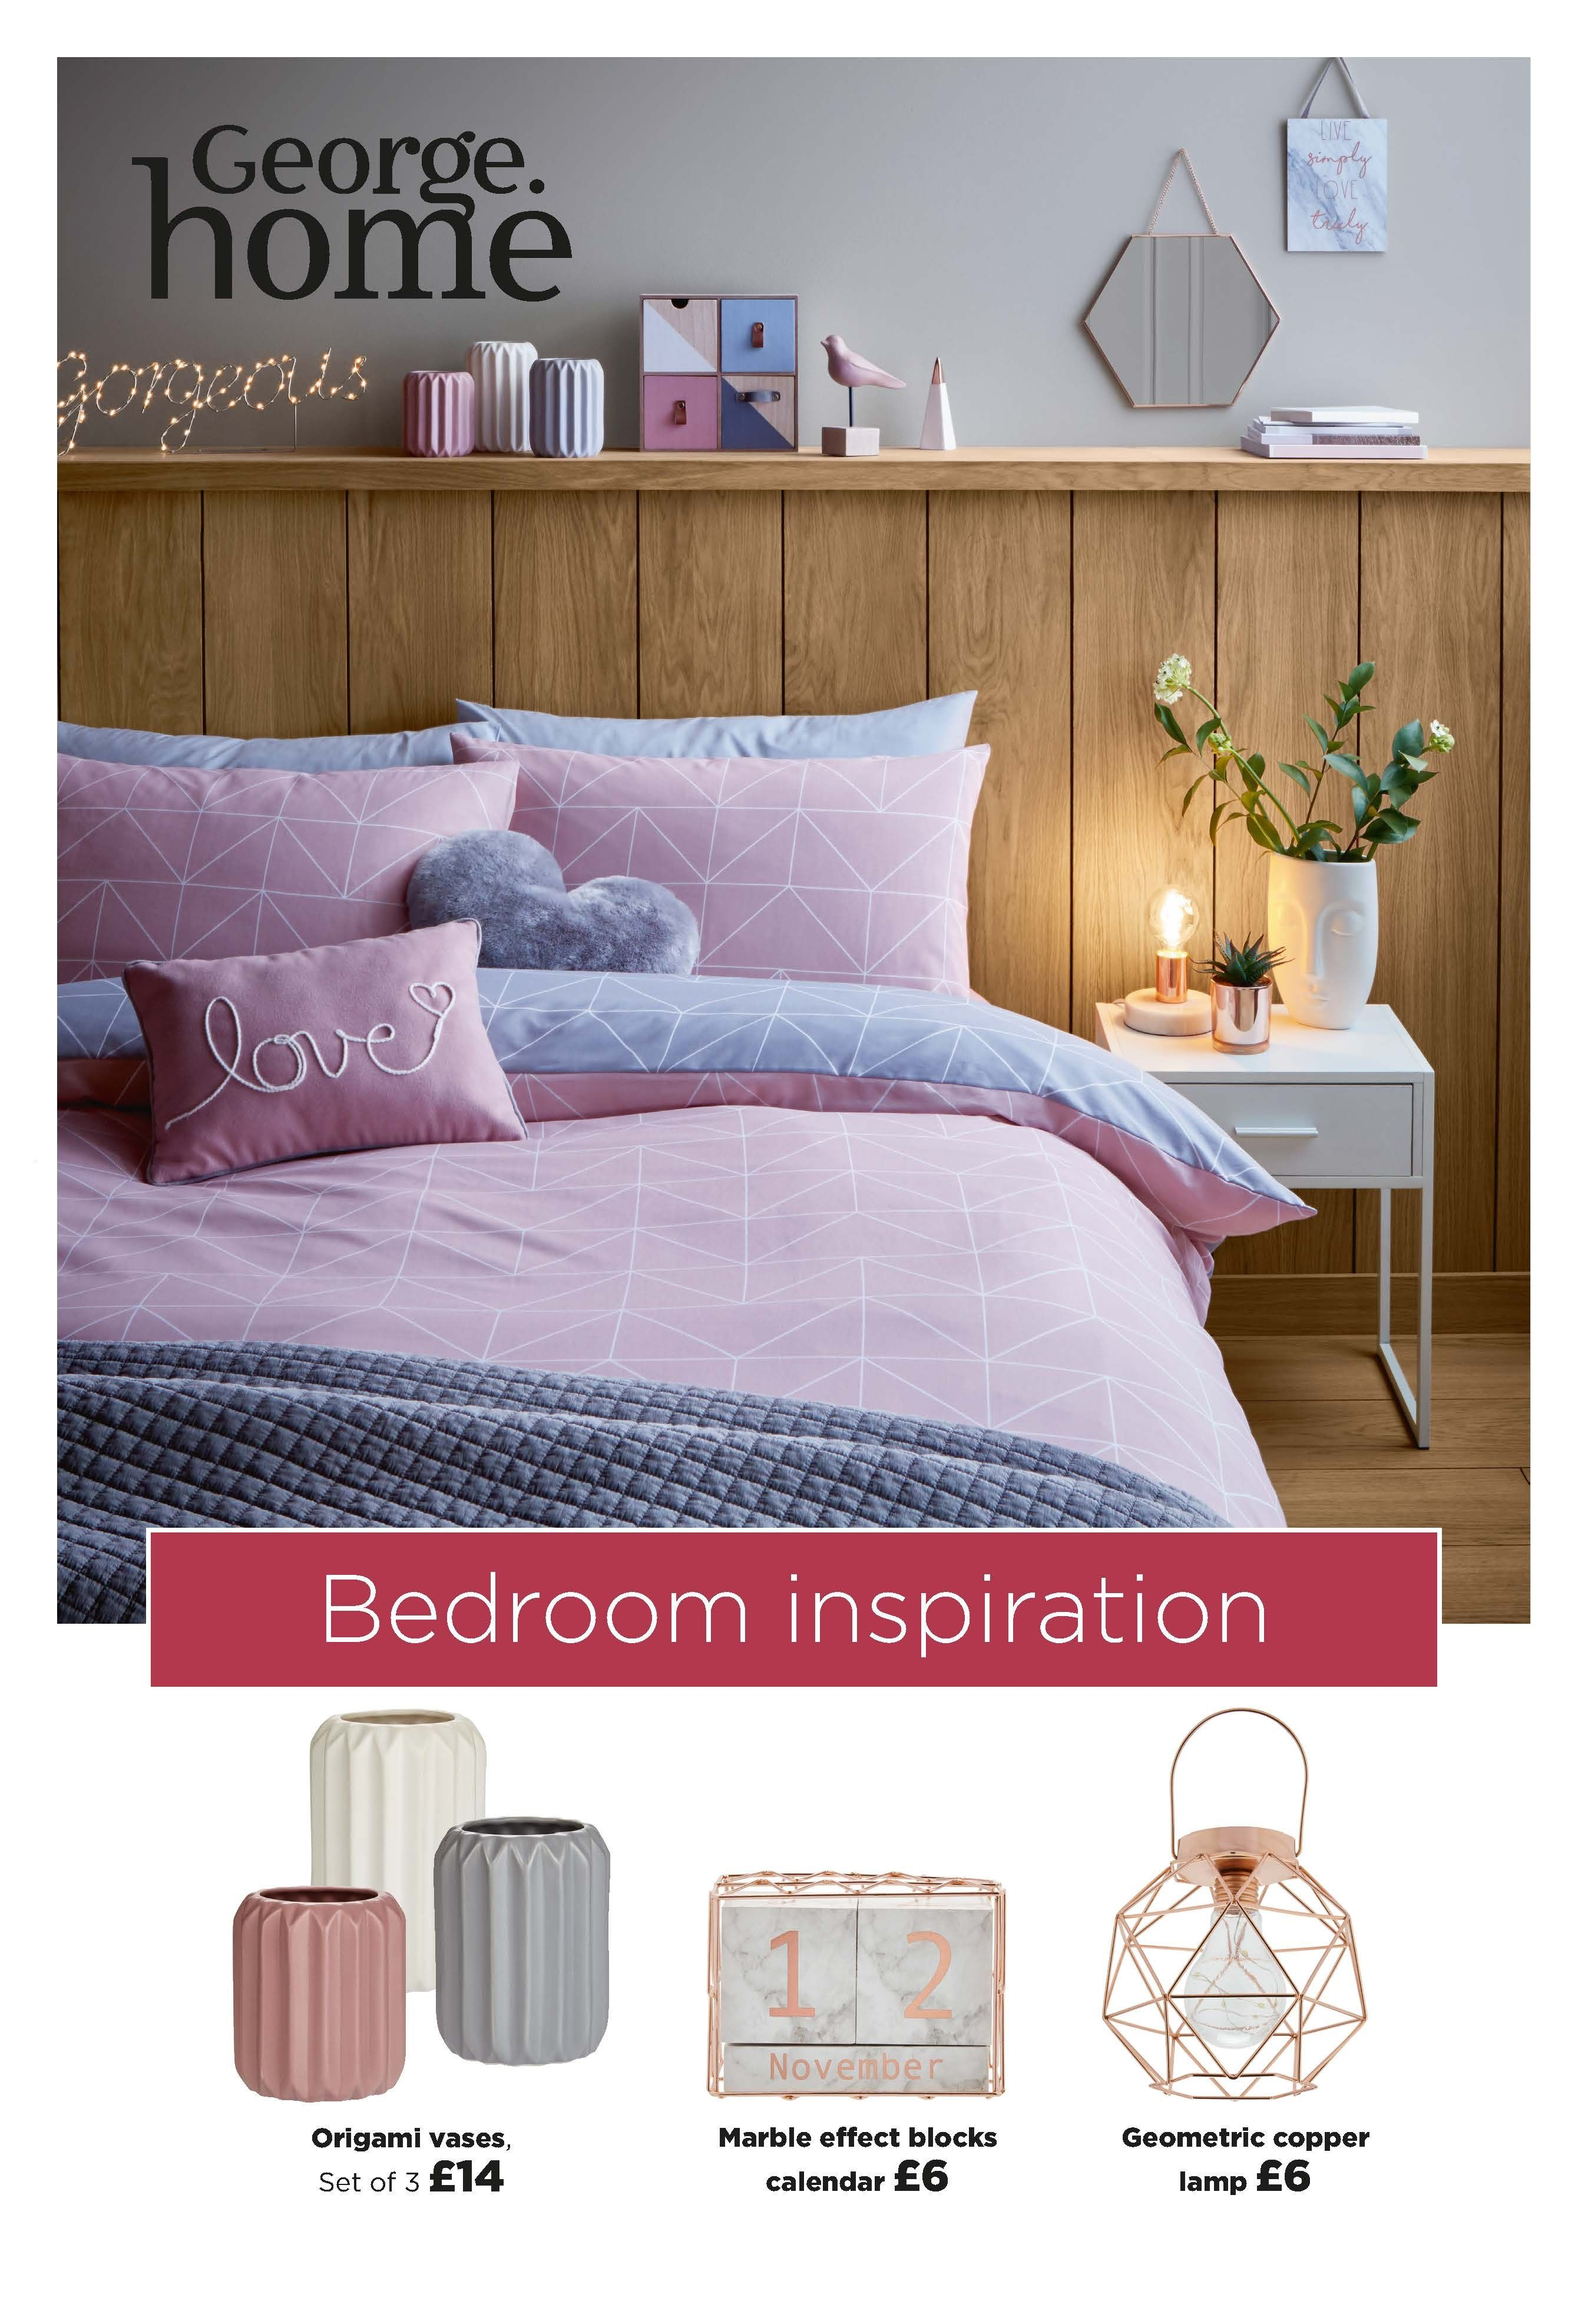 Bring the harmony trend into your bedroom with geometric patterns